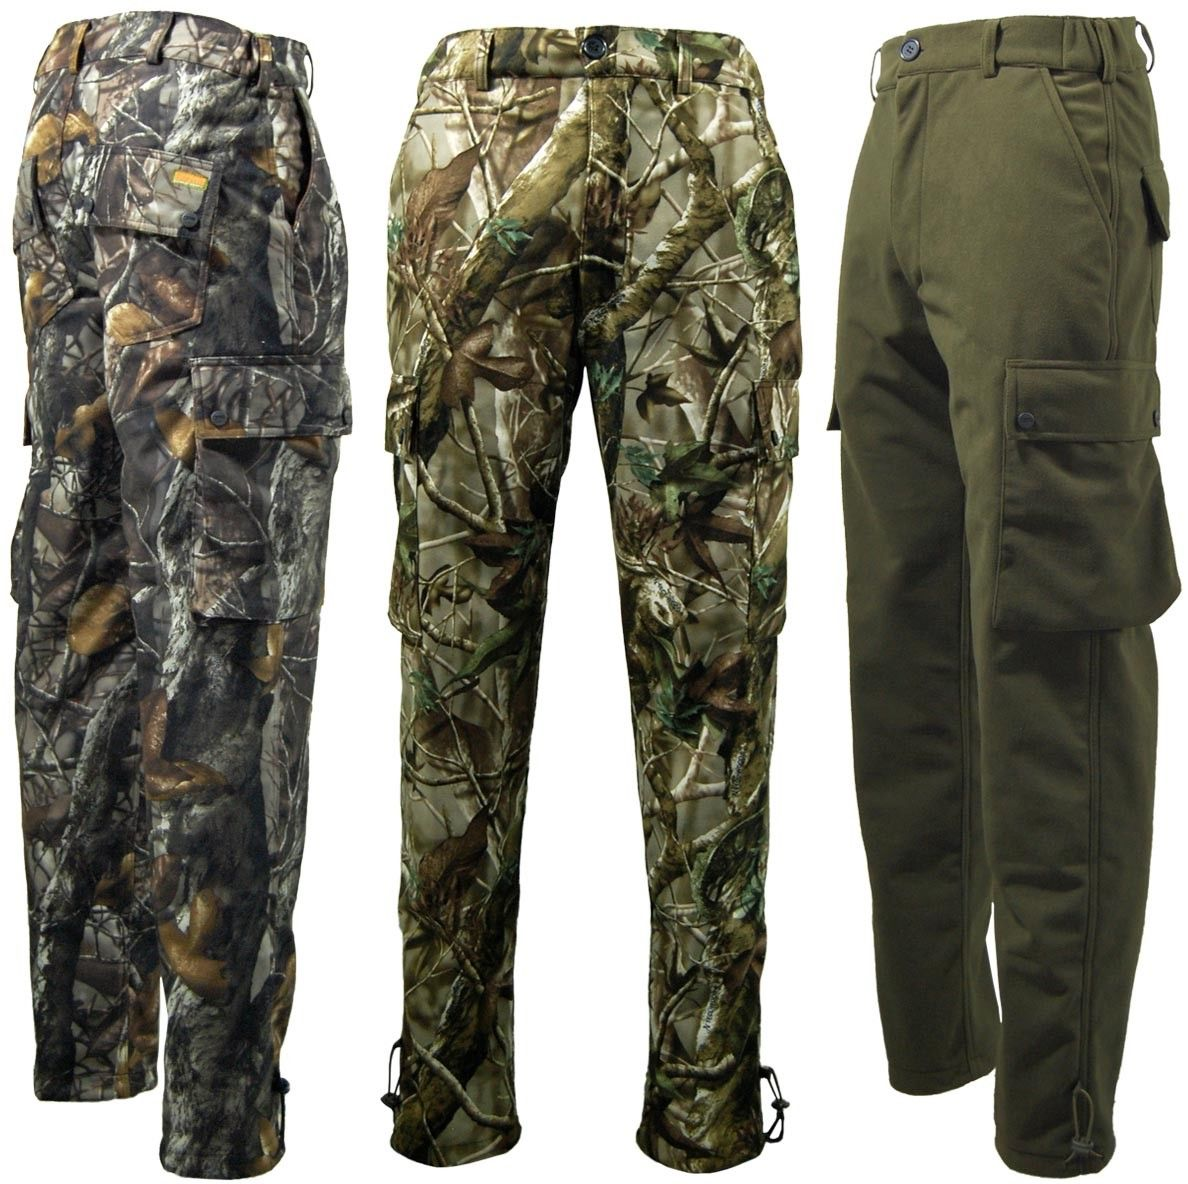 Game Mens Tecl-Wood Stealth Camouflage Army Hunting Shooting Fishing Trouser